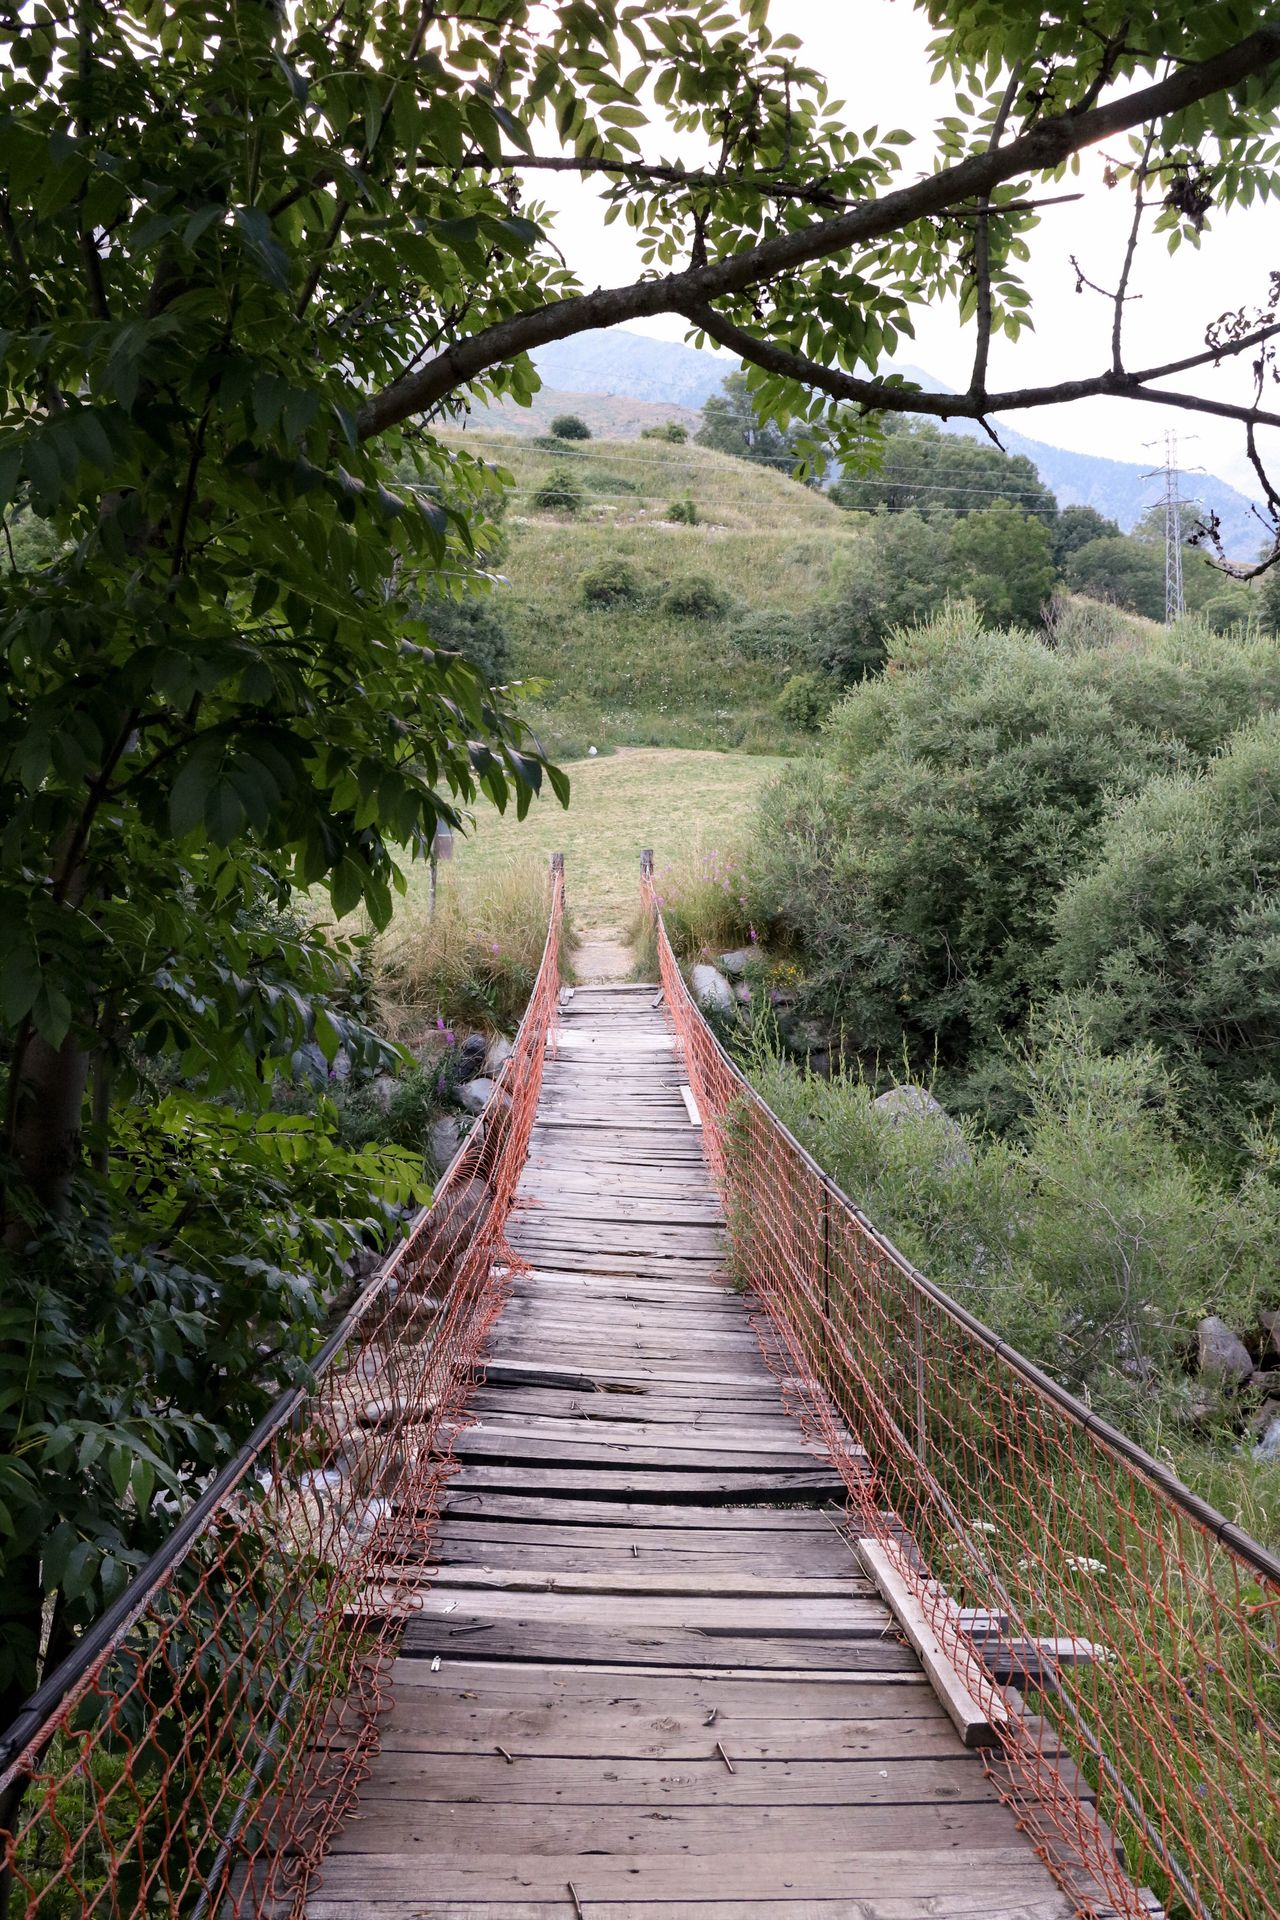 Bridge Tree Planks Tranquil Scene Landscape Tranquility Nature Wooden Plant Branch Scenics Field Footbridge Day Narrow Non-urban Scene Boardwalk Outdoors